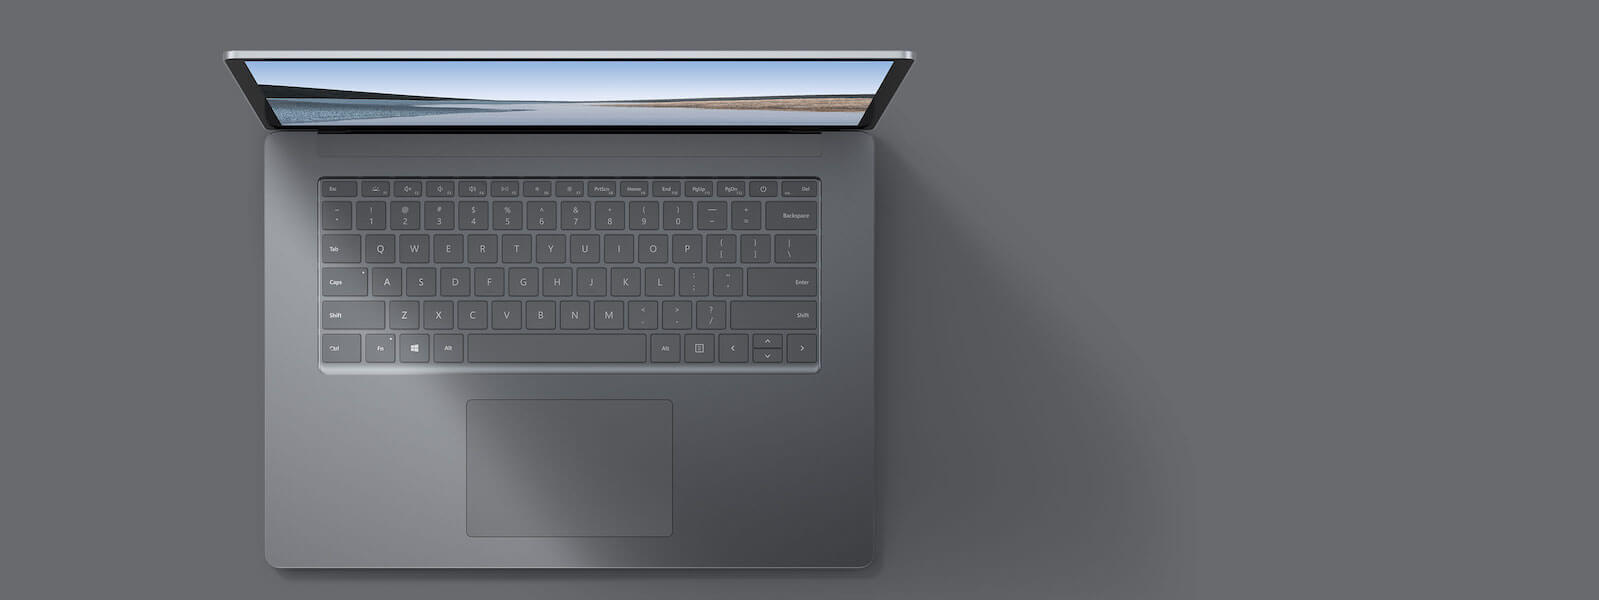 亮铂金 13.5 英寸 Surface Laptop 3 俯视图